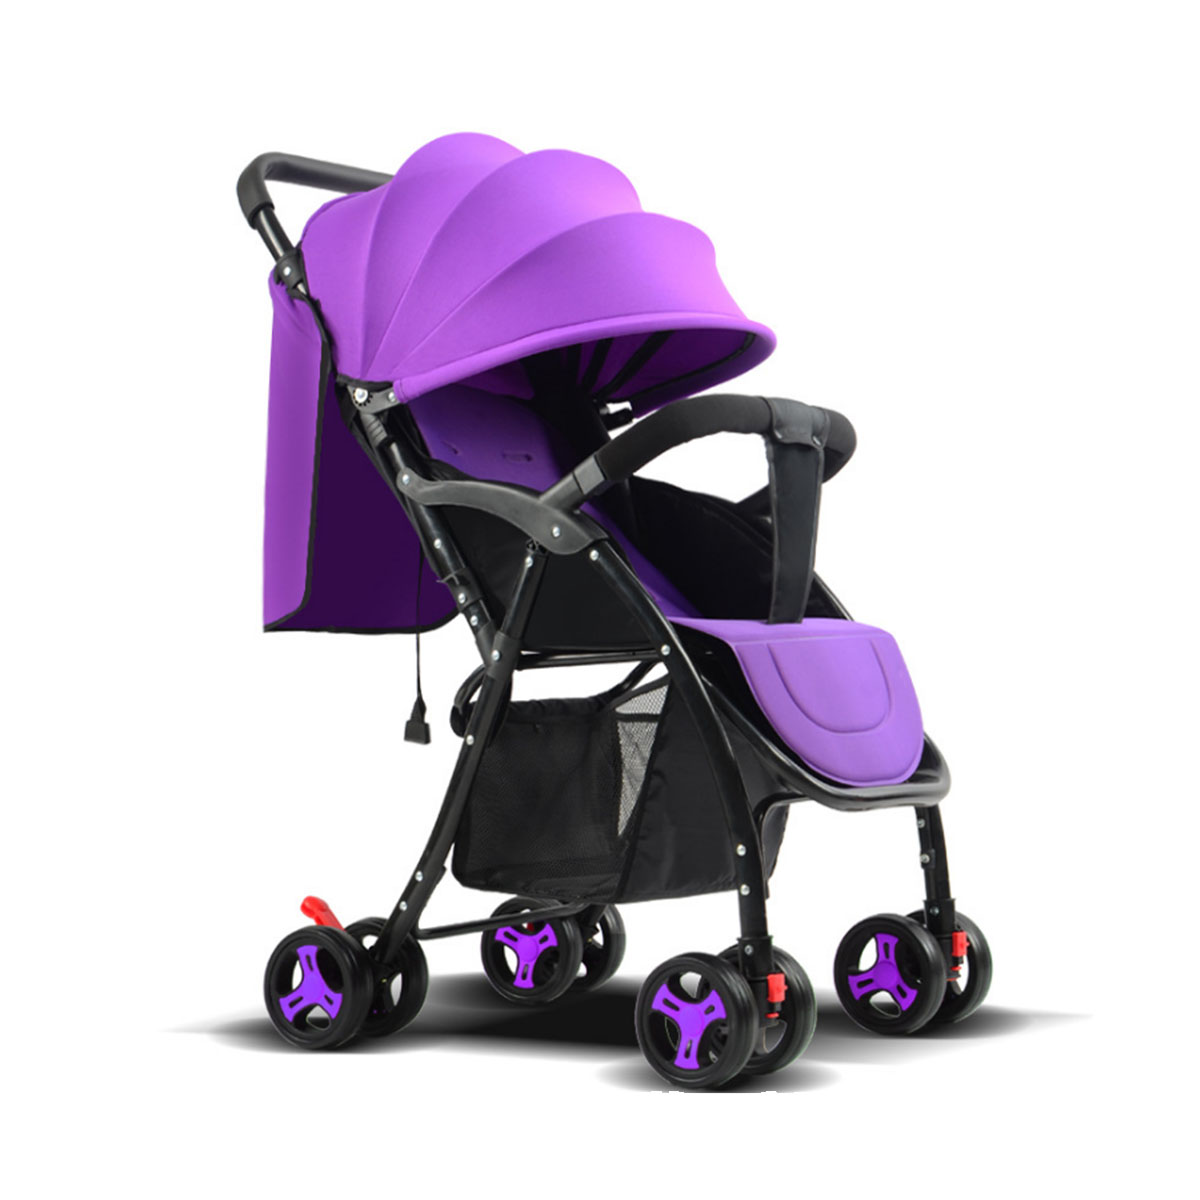 Foldable Baby Kids Stroller Newborn Infant Awning Pushchair Buggy Travel Pram Lightweight Strollers